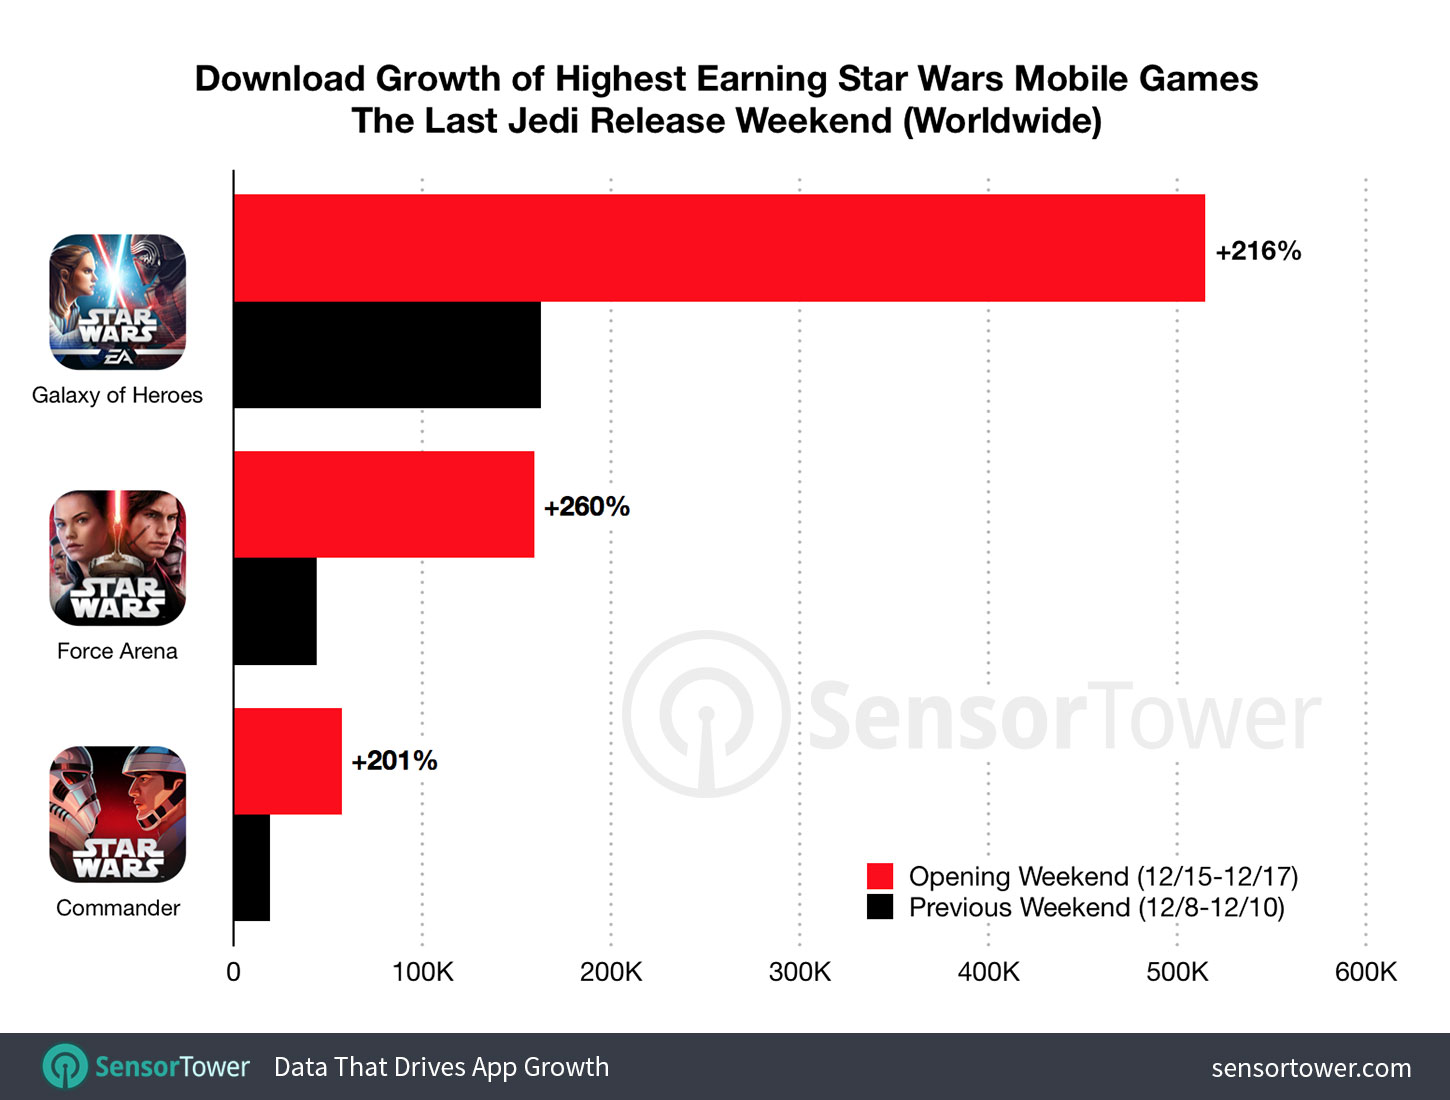 Chart showing the growth of Star Wars mobile game installs for the release weekend on The Last Jedi 'the last jedi' premiere more than doubled star wars mobile game downloads - star wars the last jedi downloads - 'The Last Jedi' Premiere More Than Doubled Star Wars Mobile Game Downloads